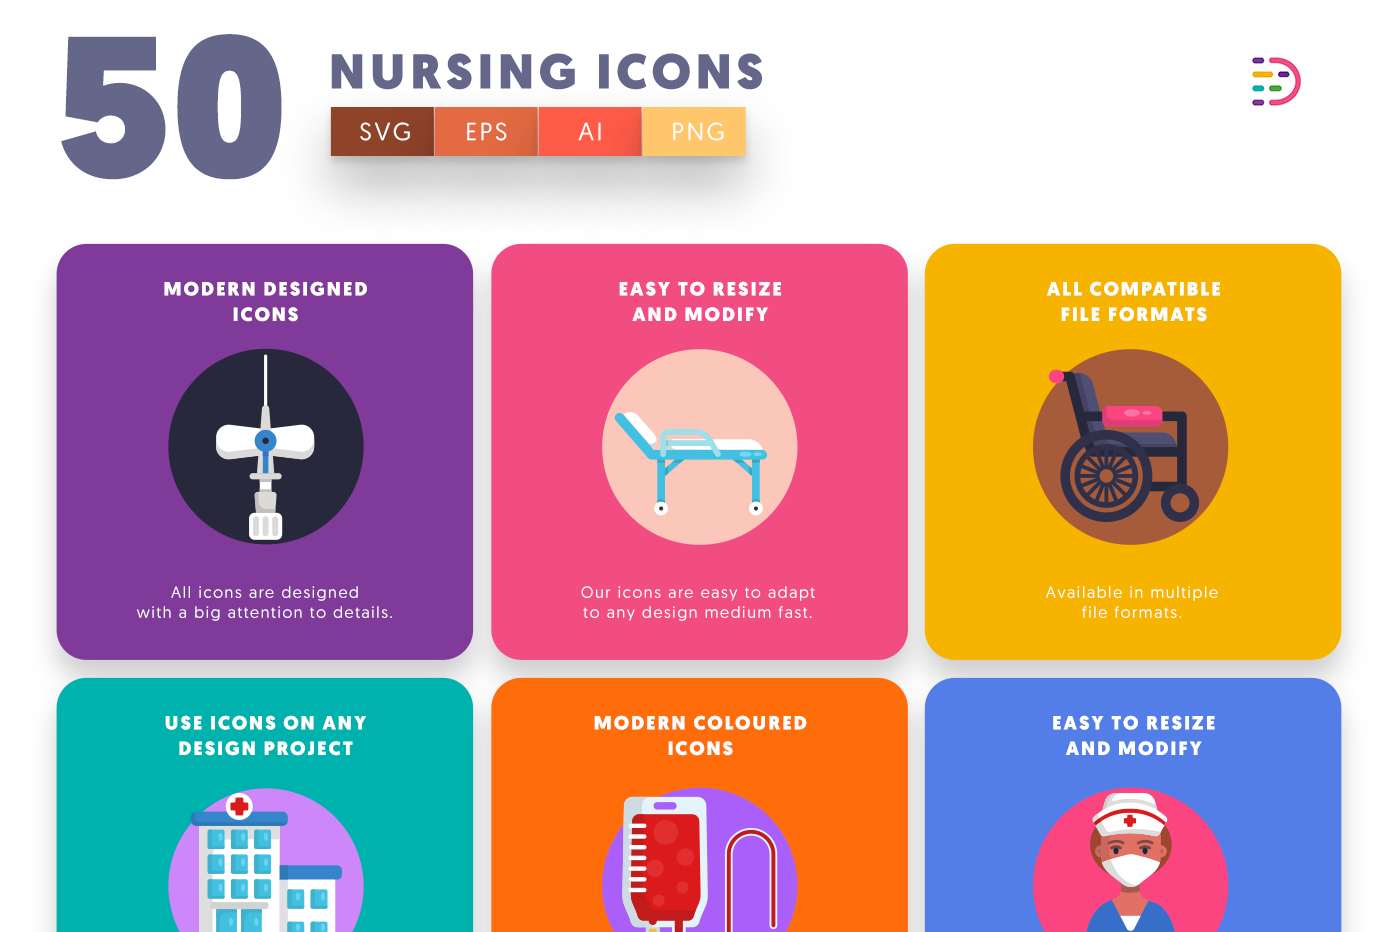 50 Nursing Icons with colored backgrounds